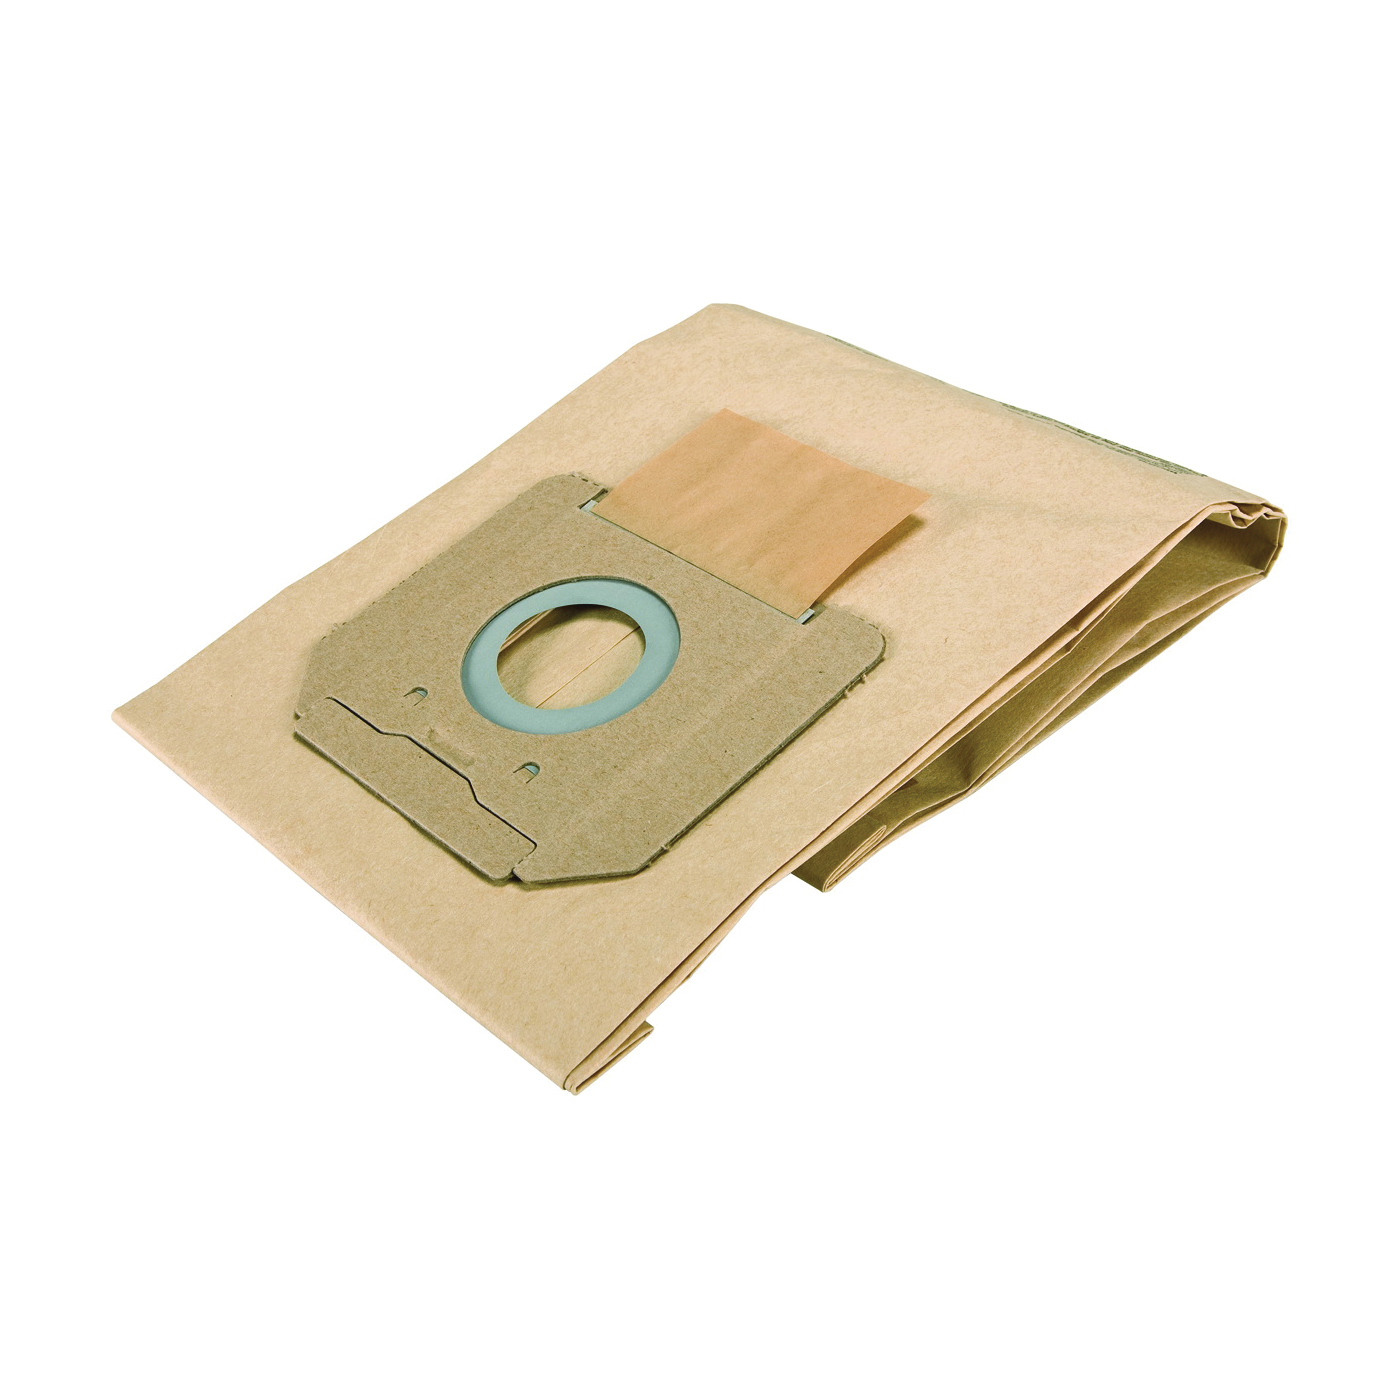 Picture of PORTER-CABLE 78121 Filter Bag, 10 gal Capacity, 8 in L, Kraft Paper